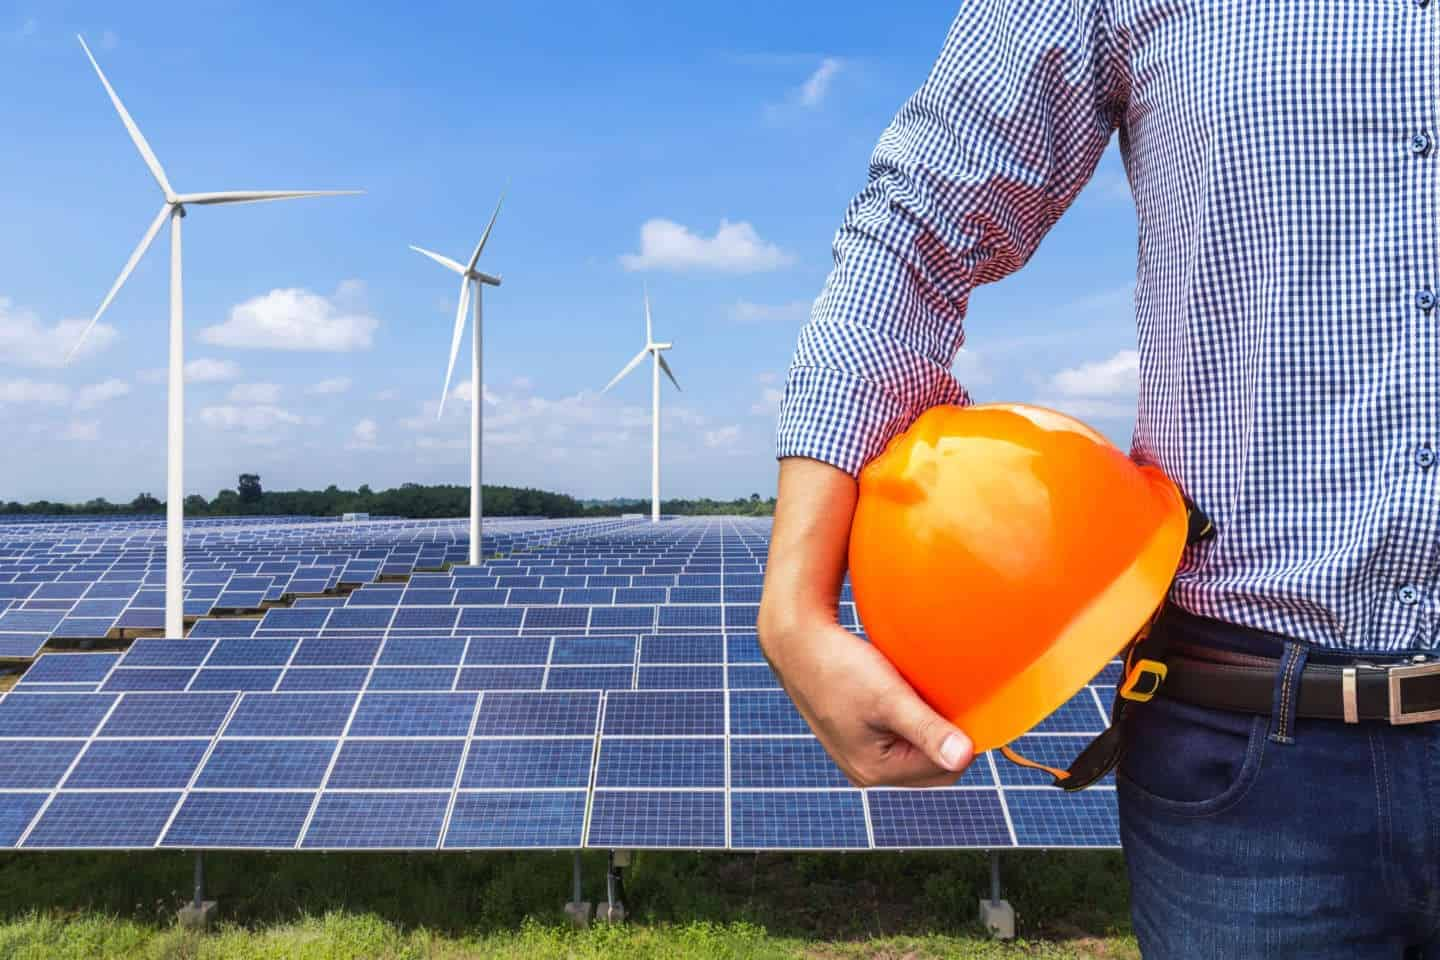 engineer stand holding yellow construction helmet front solar photovoltaic and wind turbines generating electricity power station